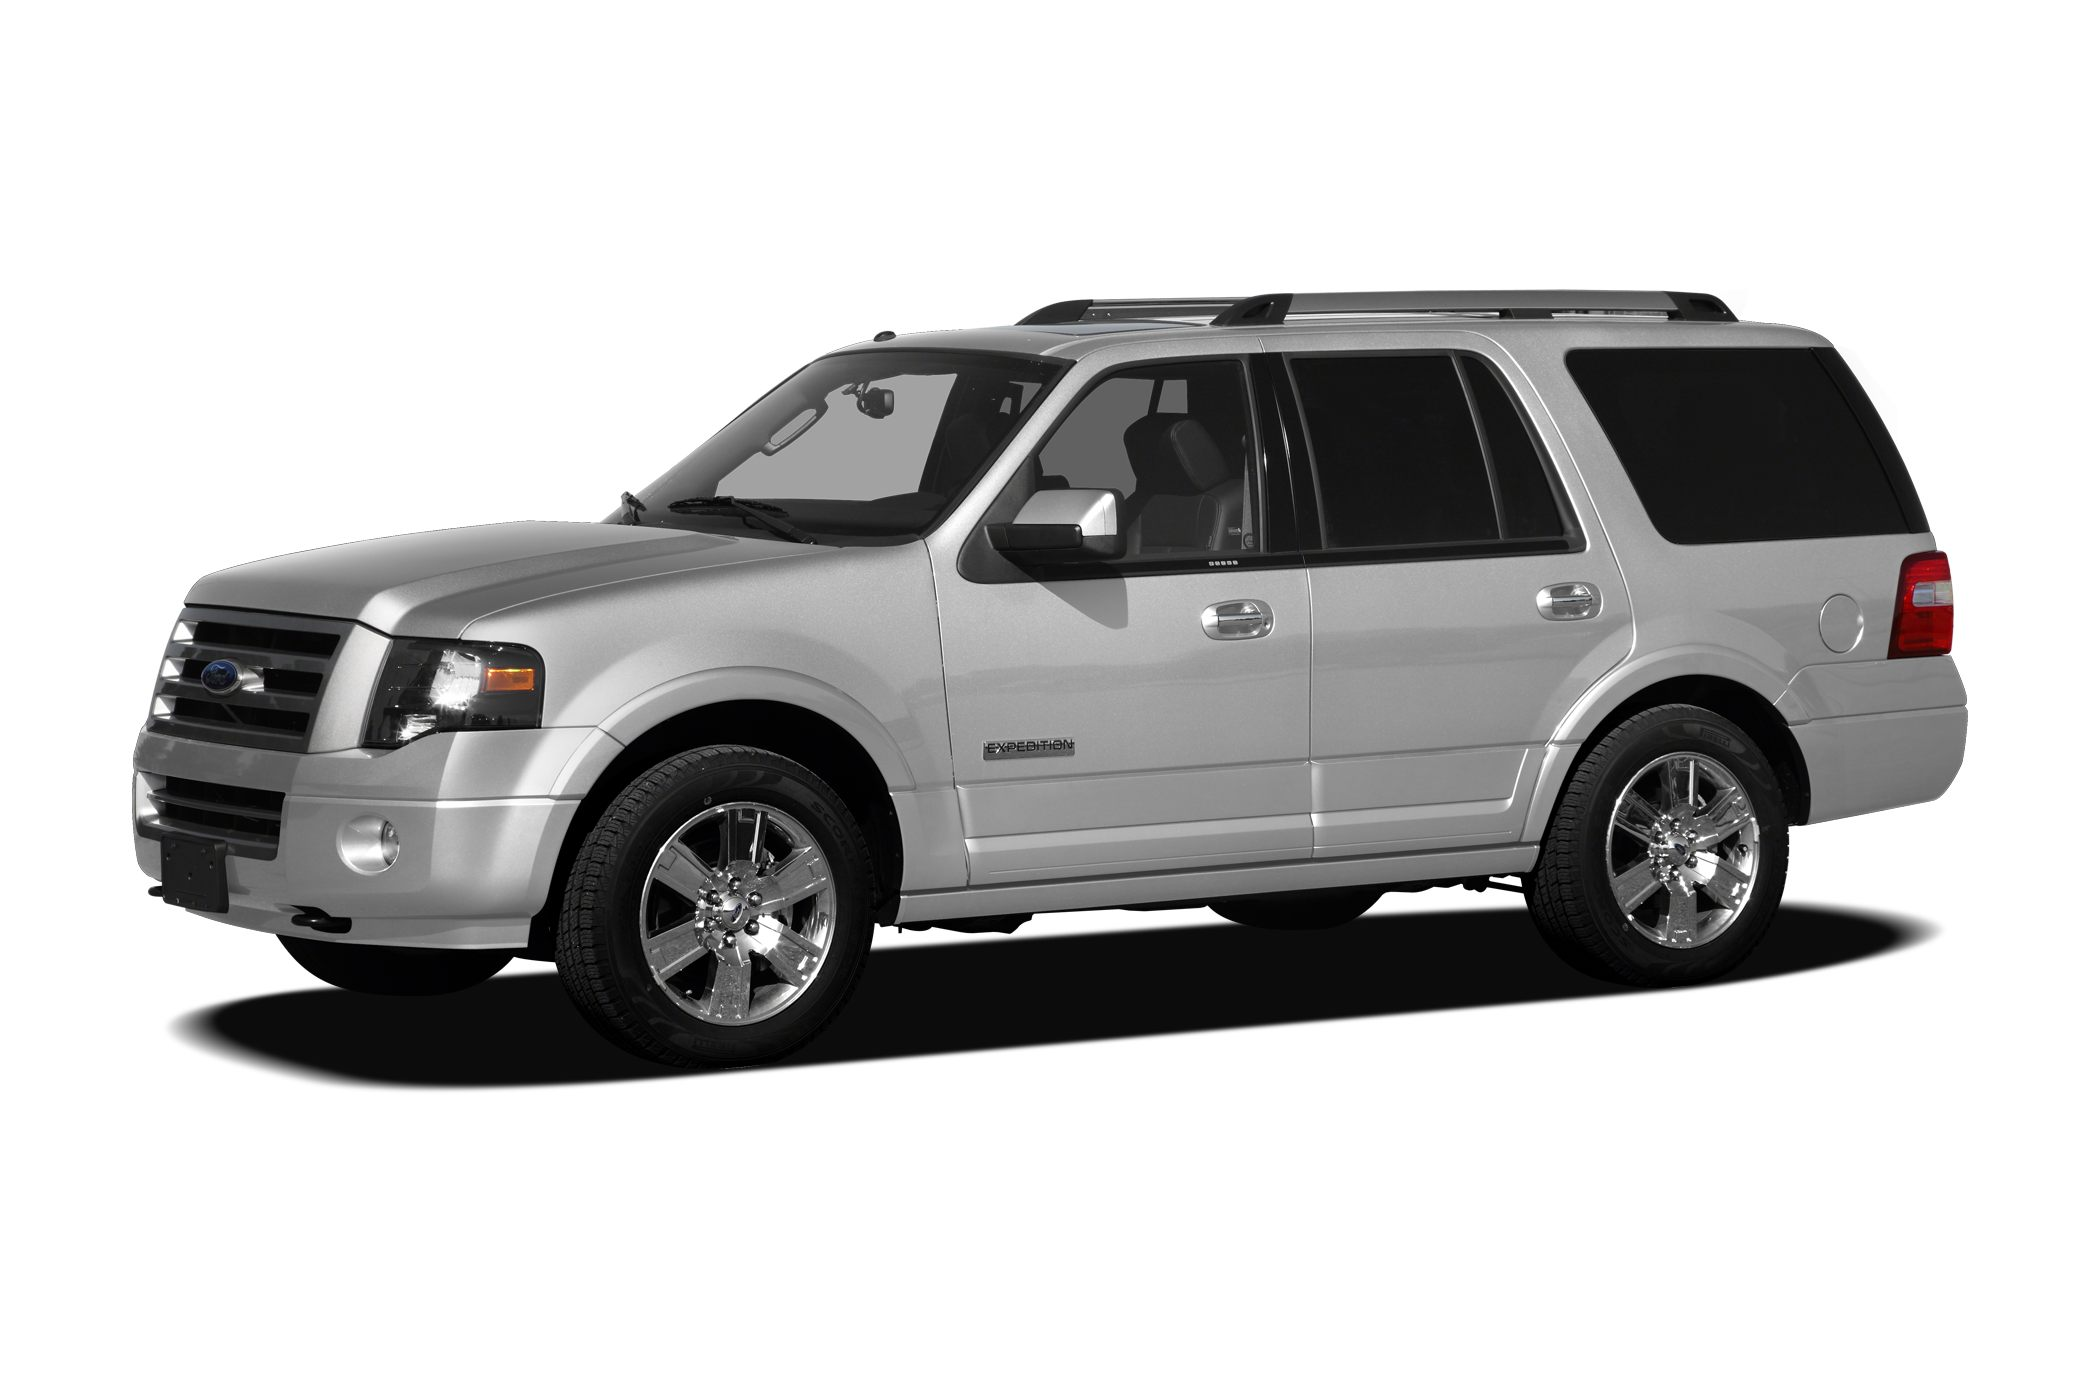 2012 Ford Expedition XLT SUV for sale in El Paso for $33,995 with 28,079 miles.